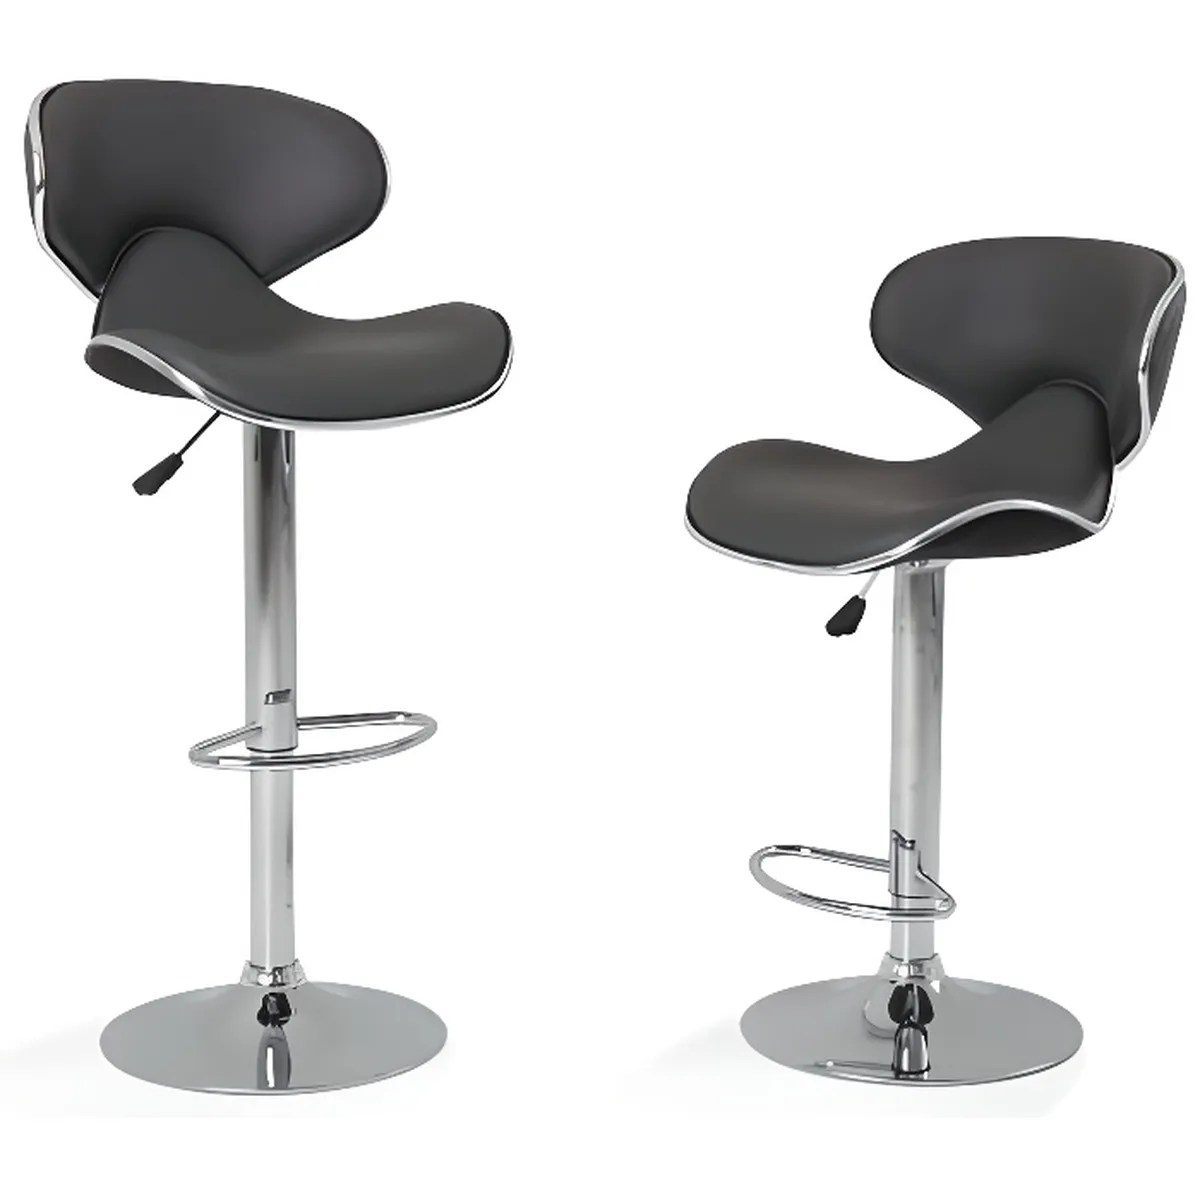 Charly Lot De 2 Tabourets De Bar Noirs Tabouret Bar Lot Achat Vente Pas Cher